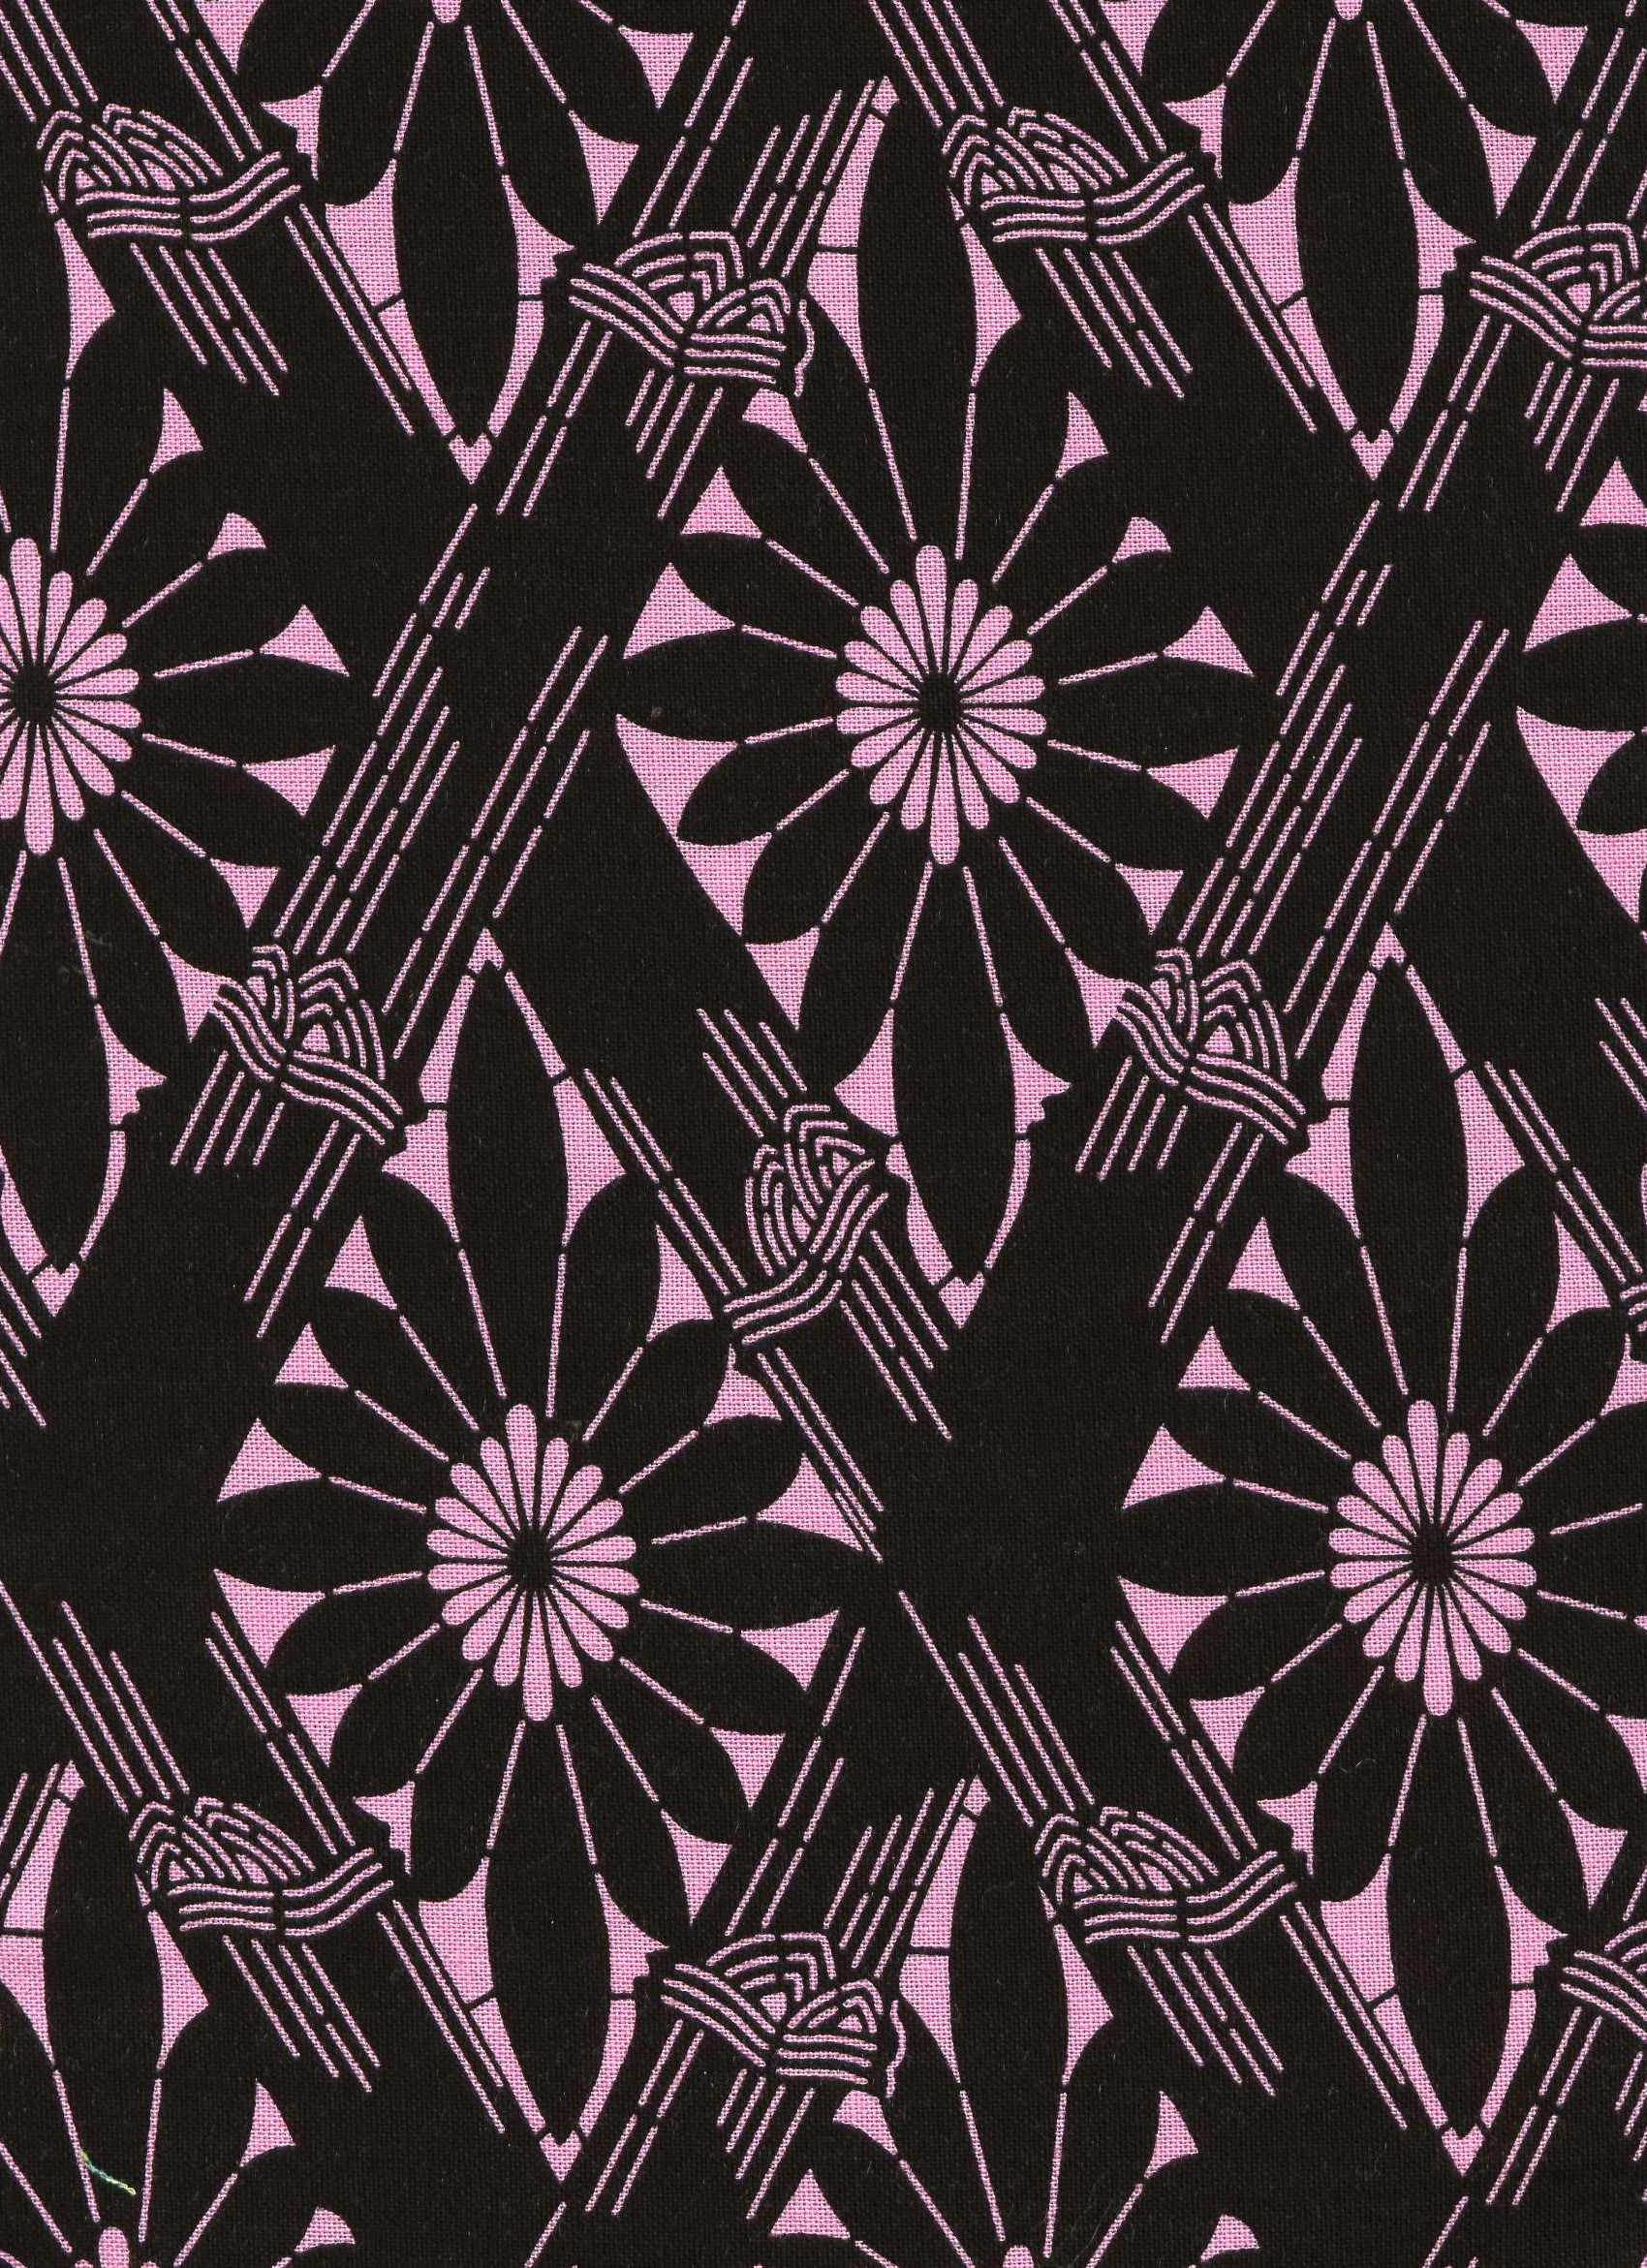 Morning Mist- Pink and Black Daisy Print